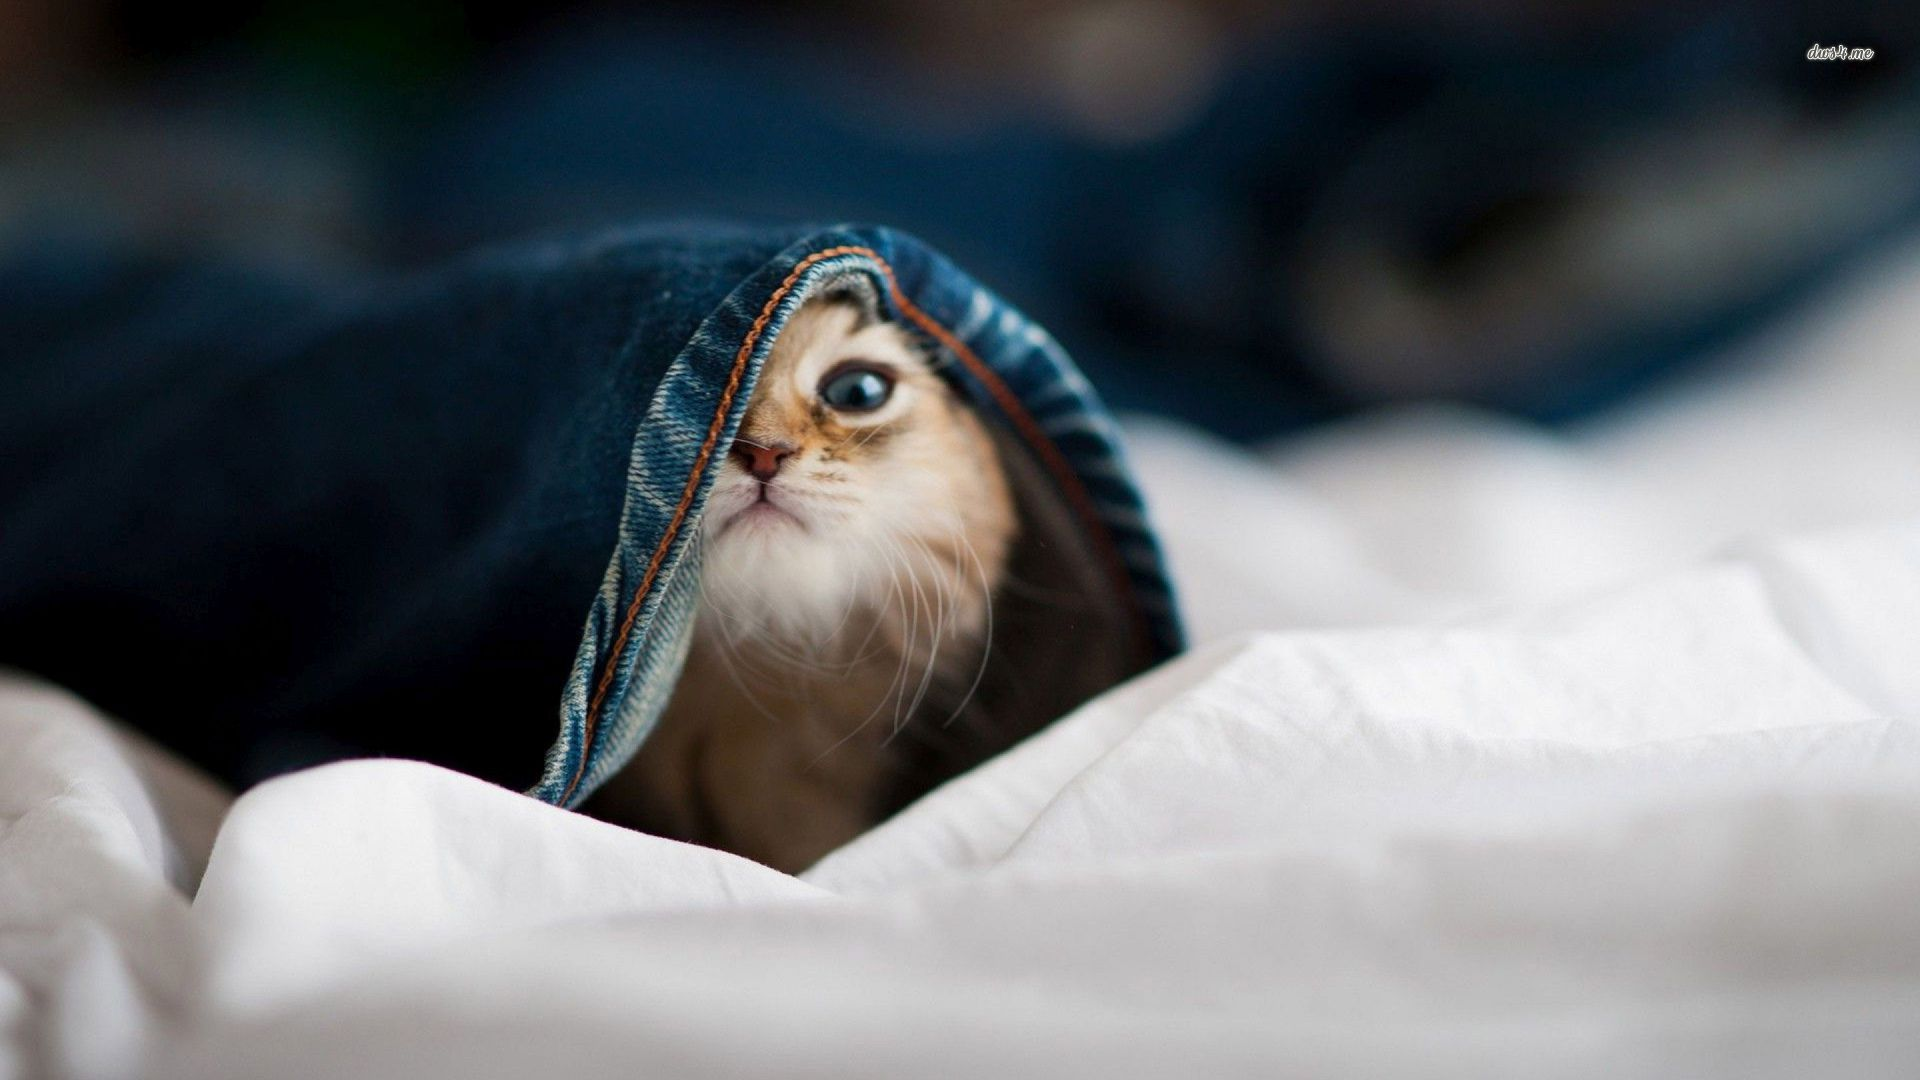 cute baby cats wallpapers (39 wallpapers) – adorable wallpapers